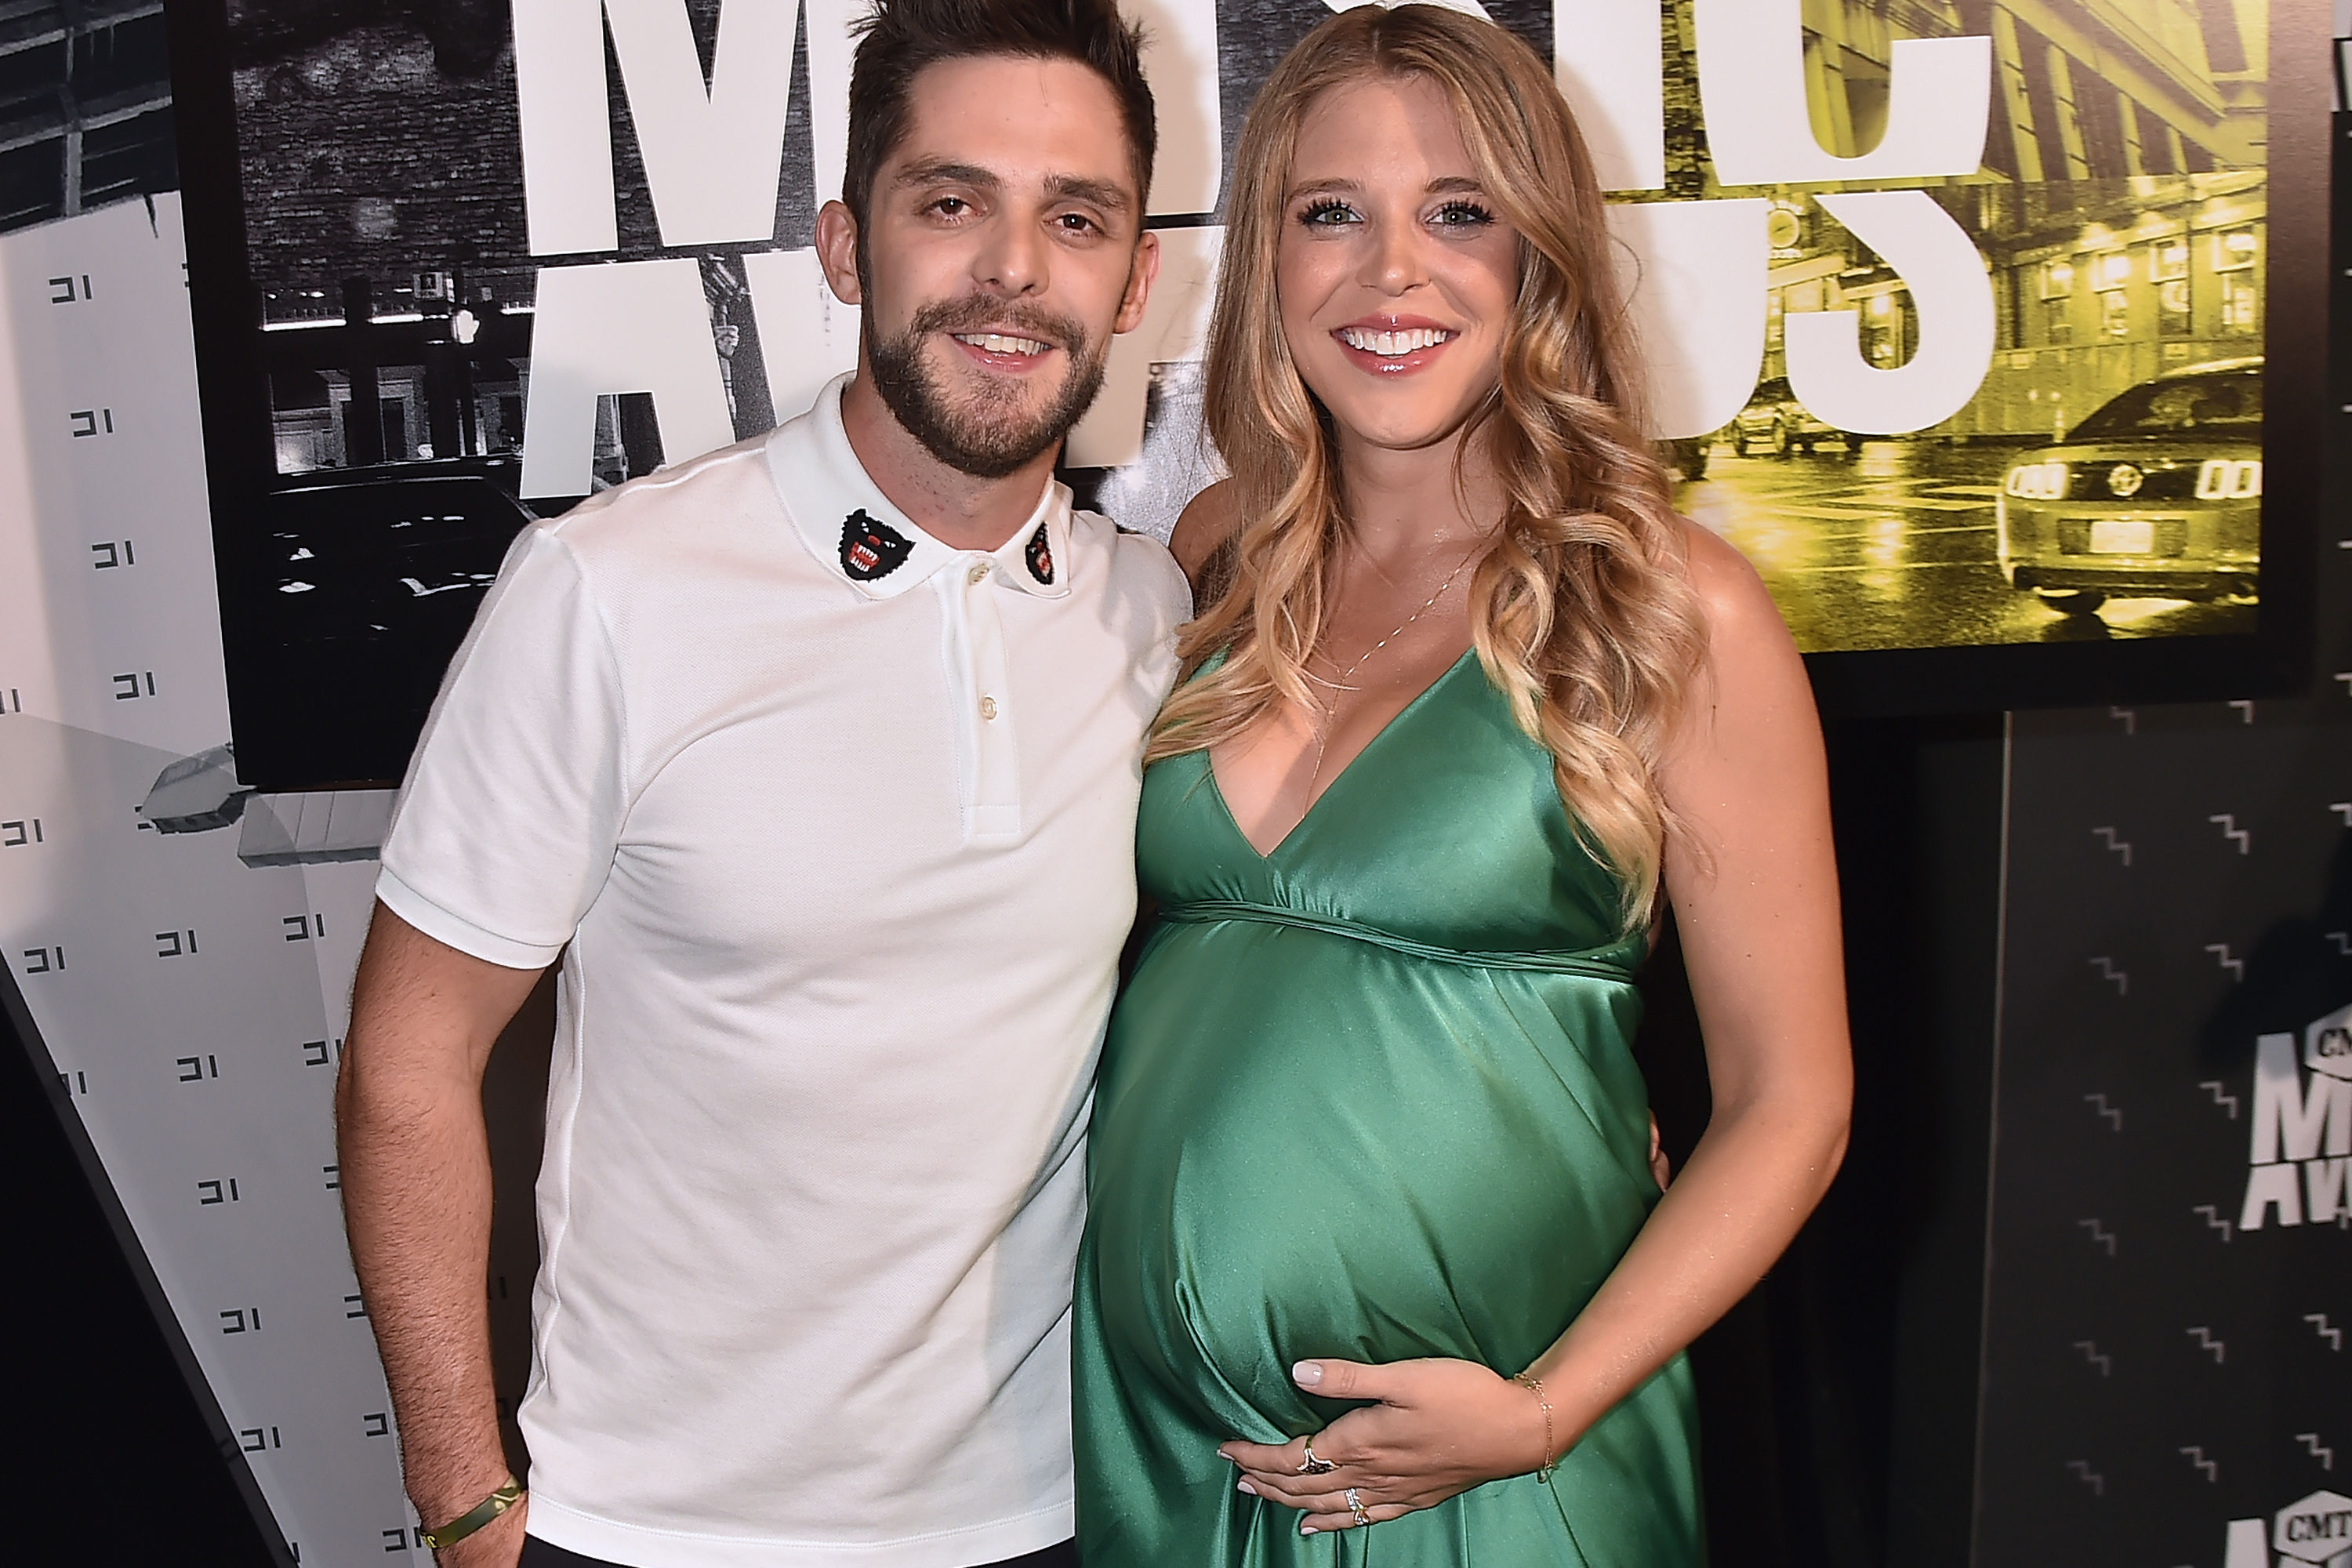 Thomas Rhett Admits He and His Wife Have No Idea What They're Doing When It Comes to Parenting